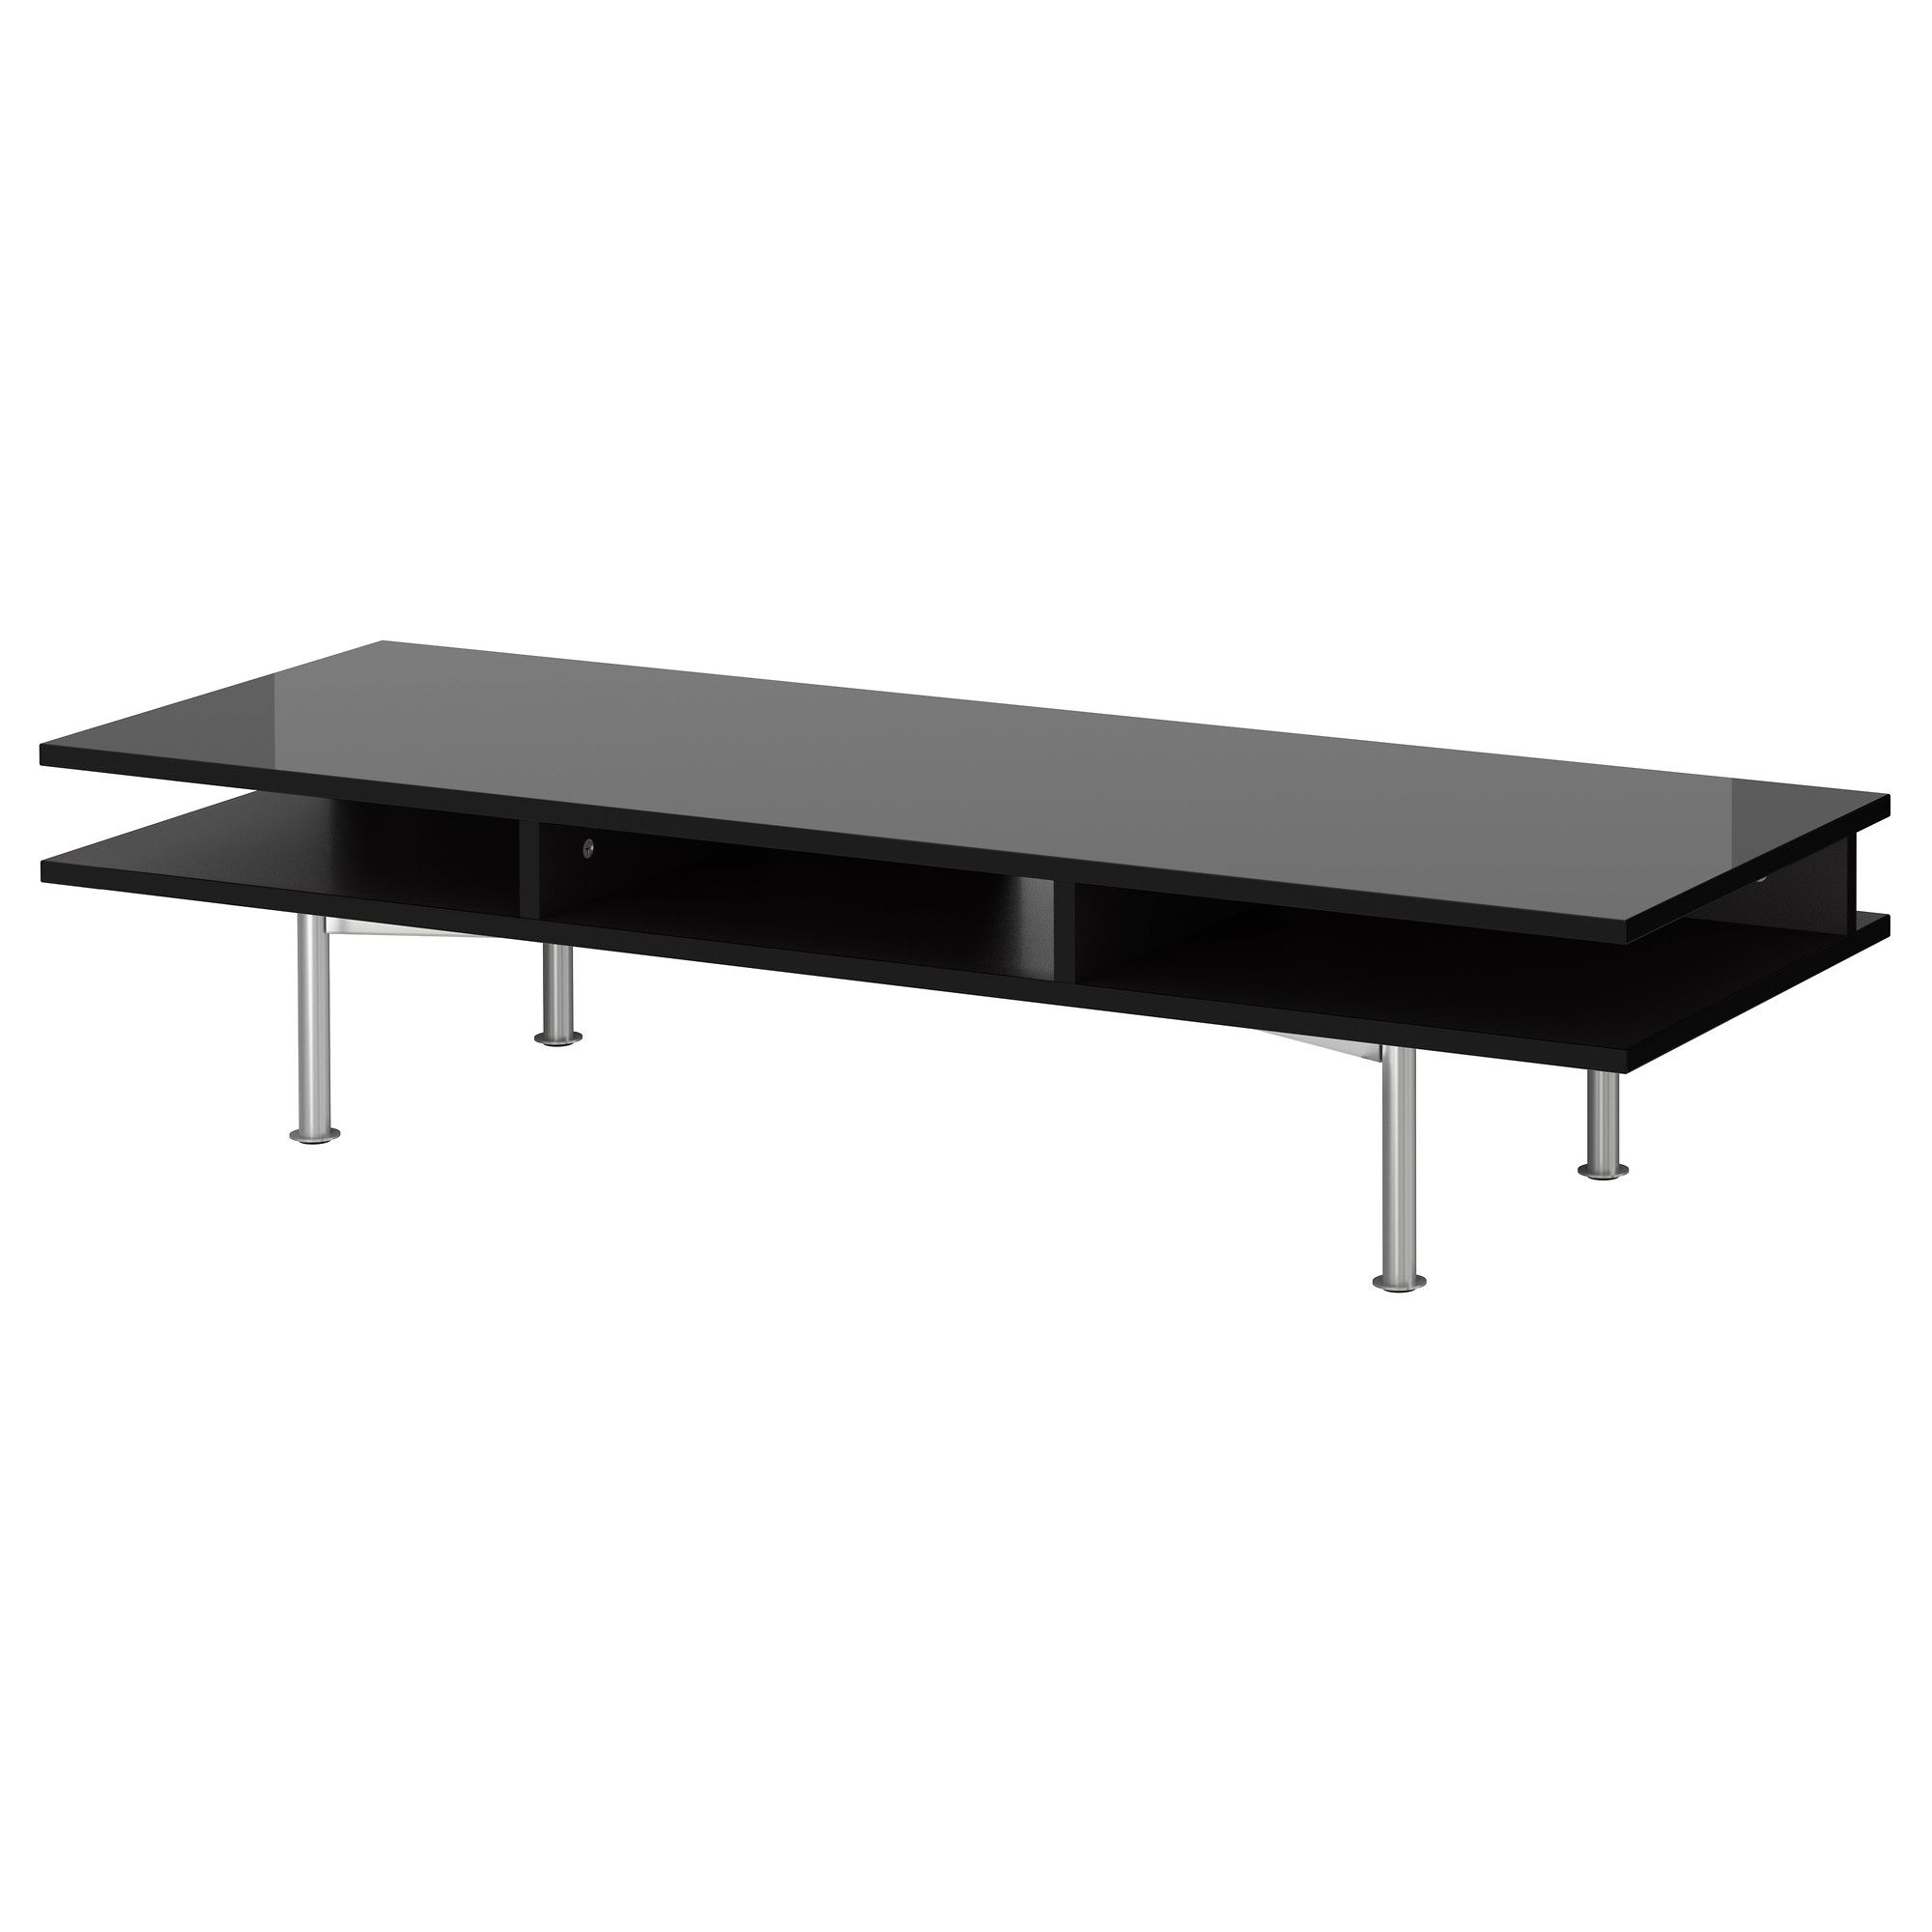 Ikea Klubbo Couchtisch Tofteryd Tv Bench High Gloss Black Ikea Given To Us Still